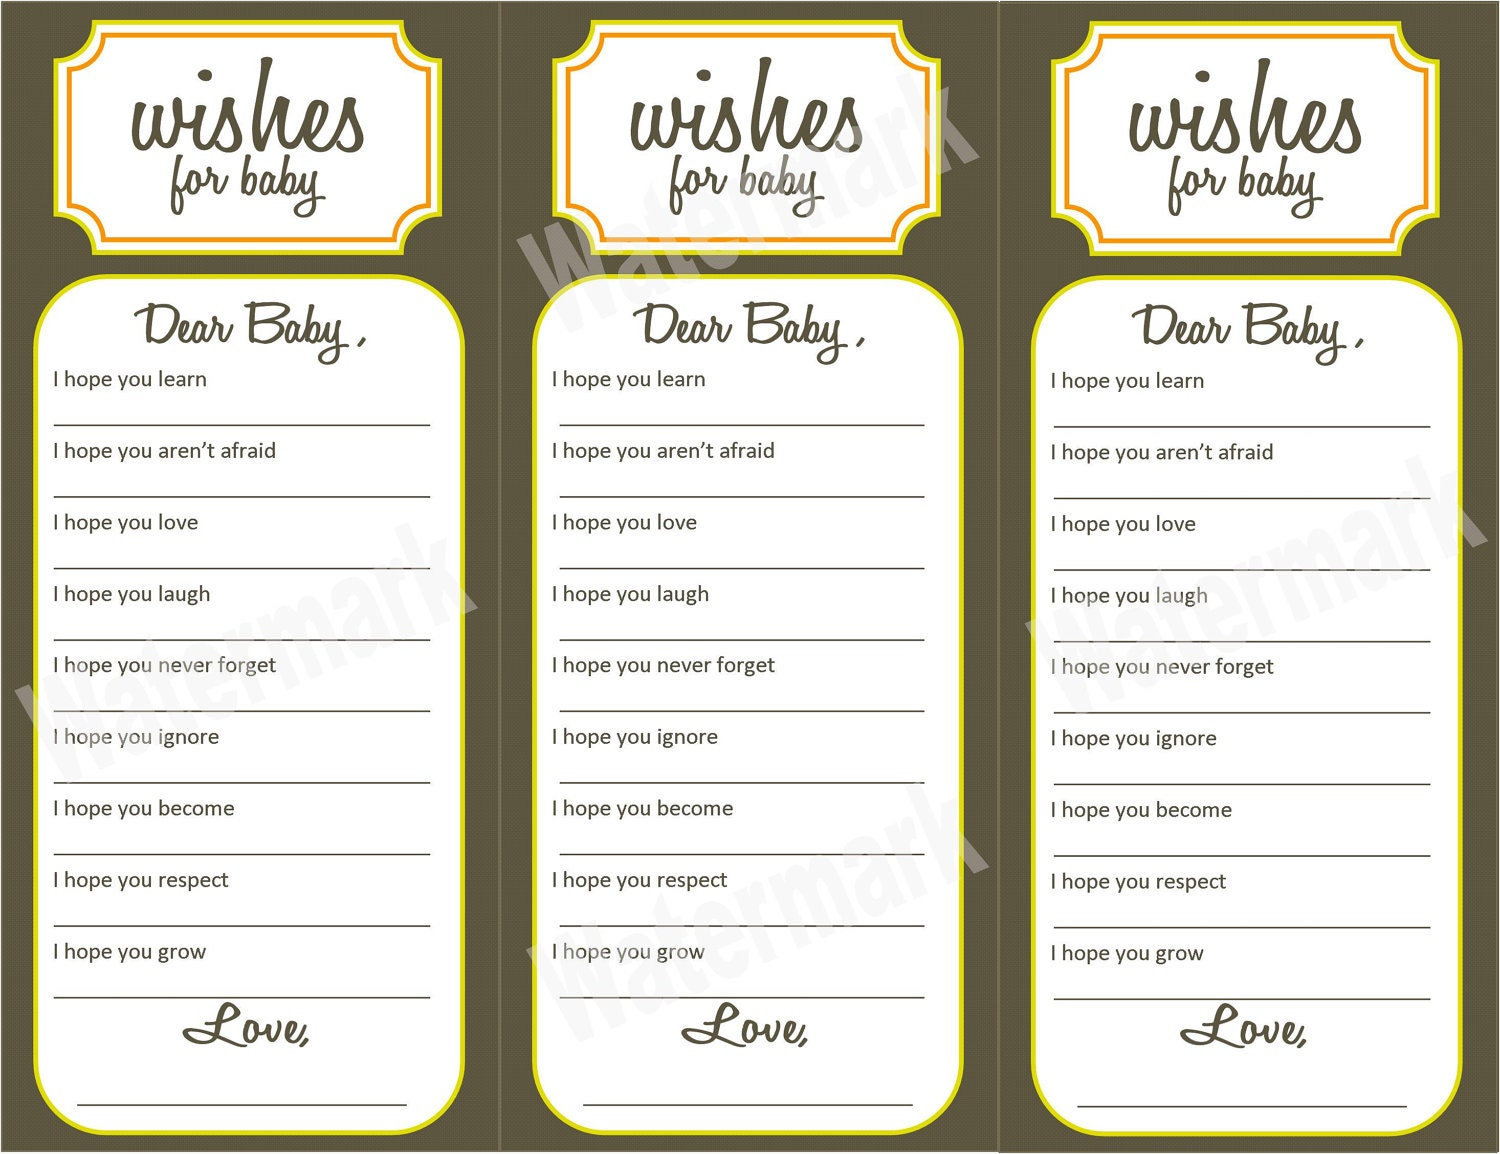 Versatile image in wishes for baby printable